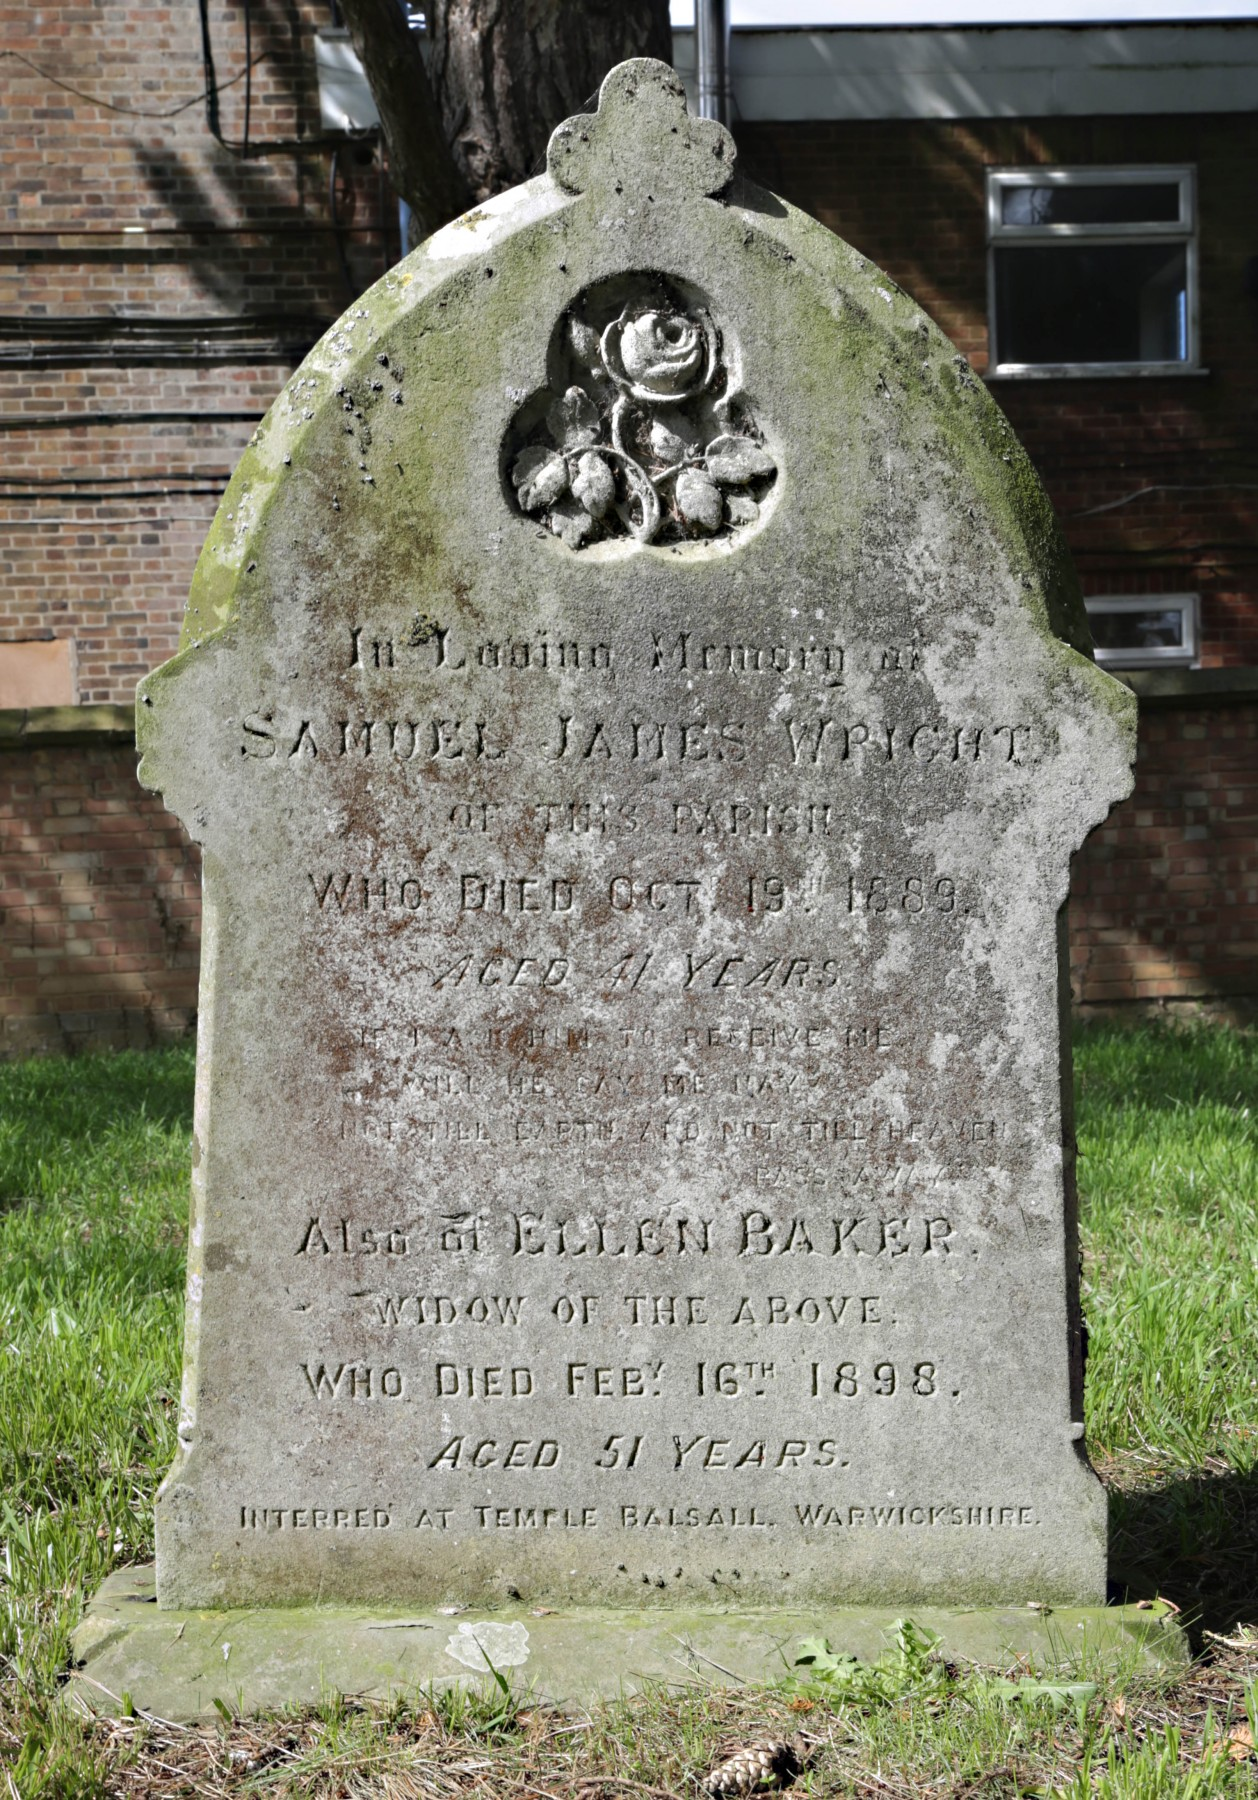 Grave of Samuel James Wright